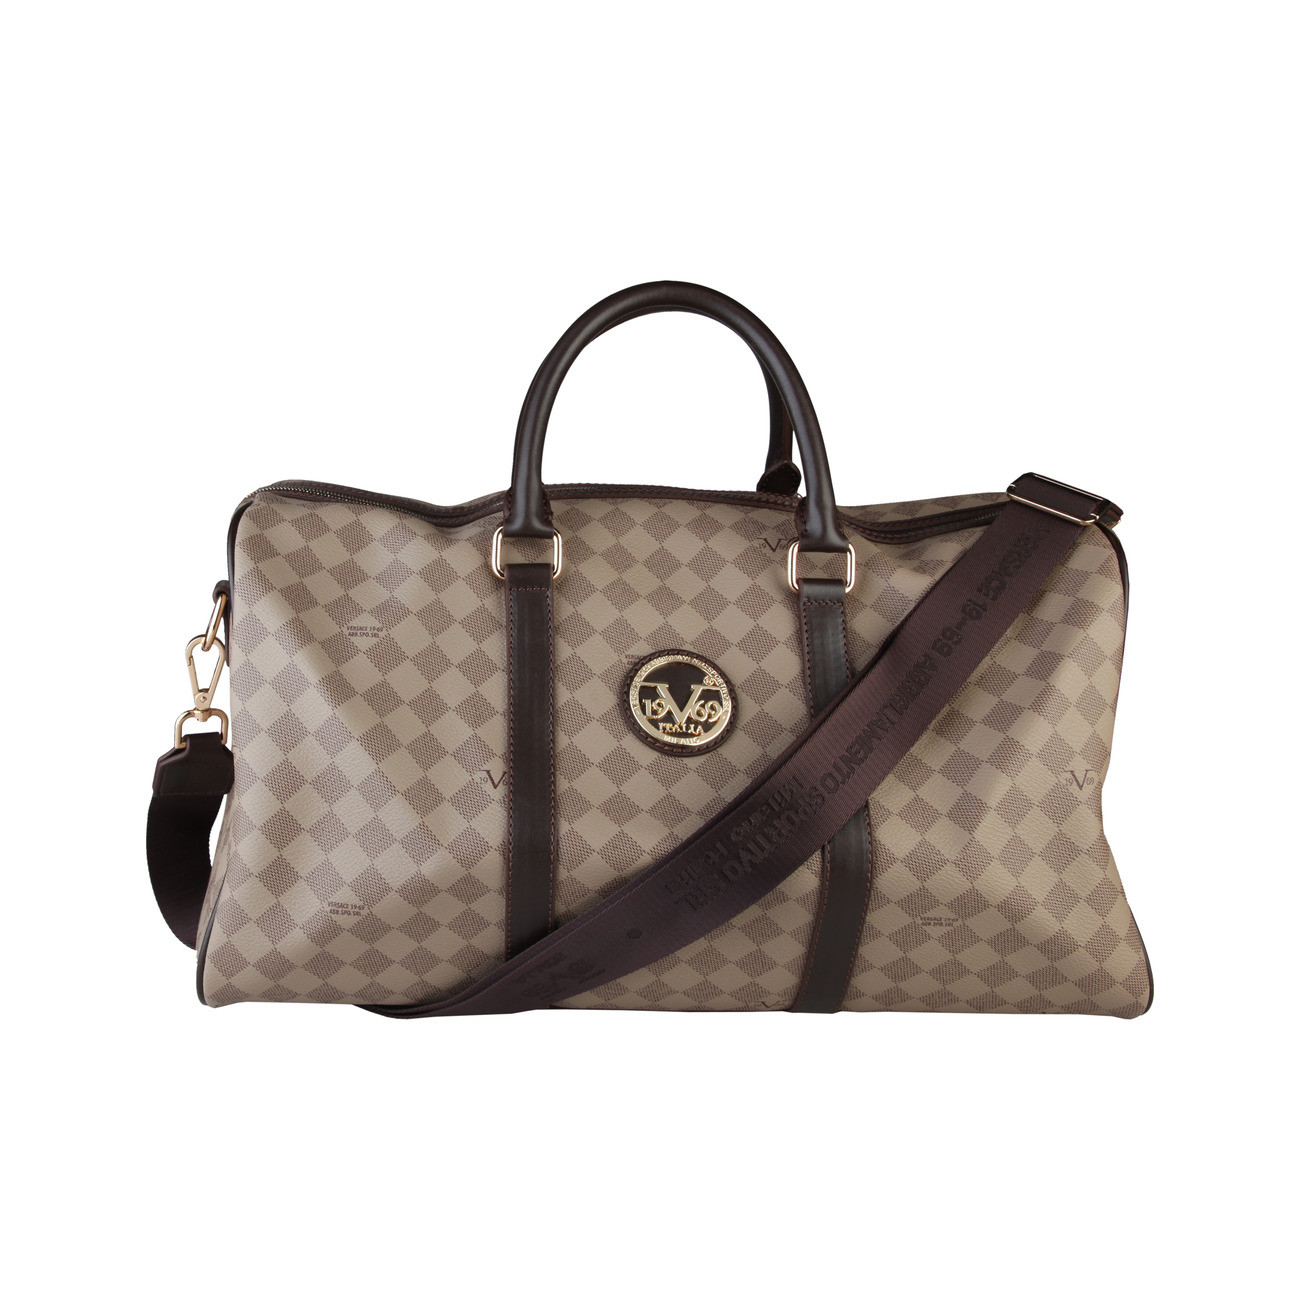 92750fdf8a Ladies Travel Duffle Bag V 1969 - 5VXW87652 From eco Leather In ...